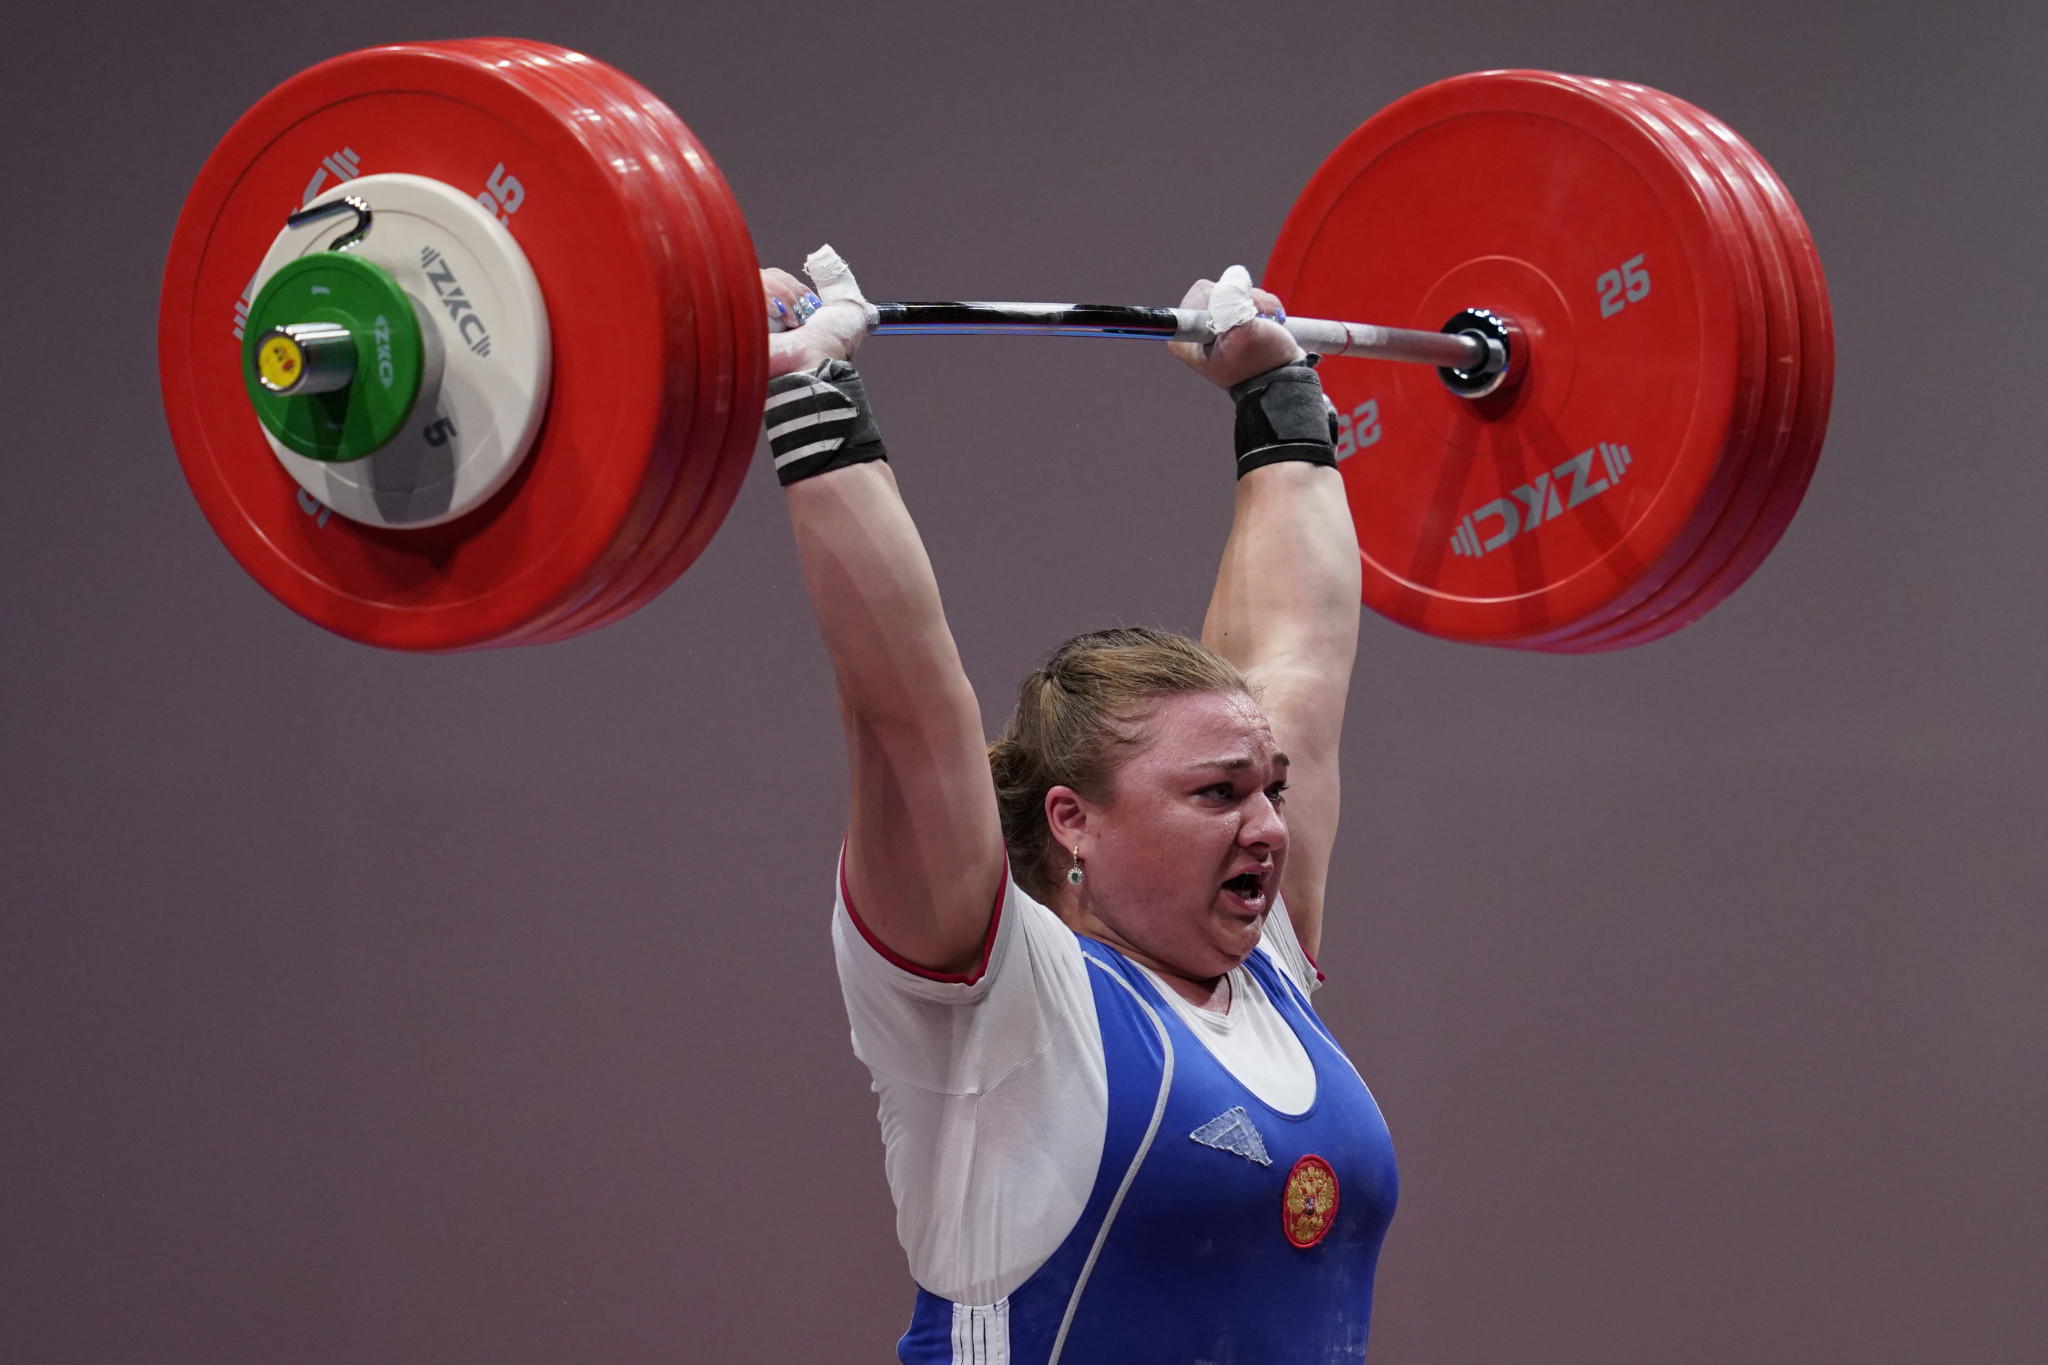 Russian Weightlifting Championships postponed over coronavirus